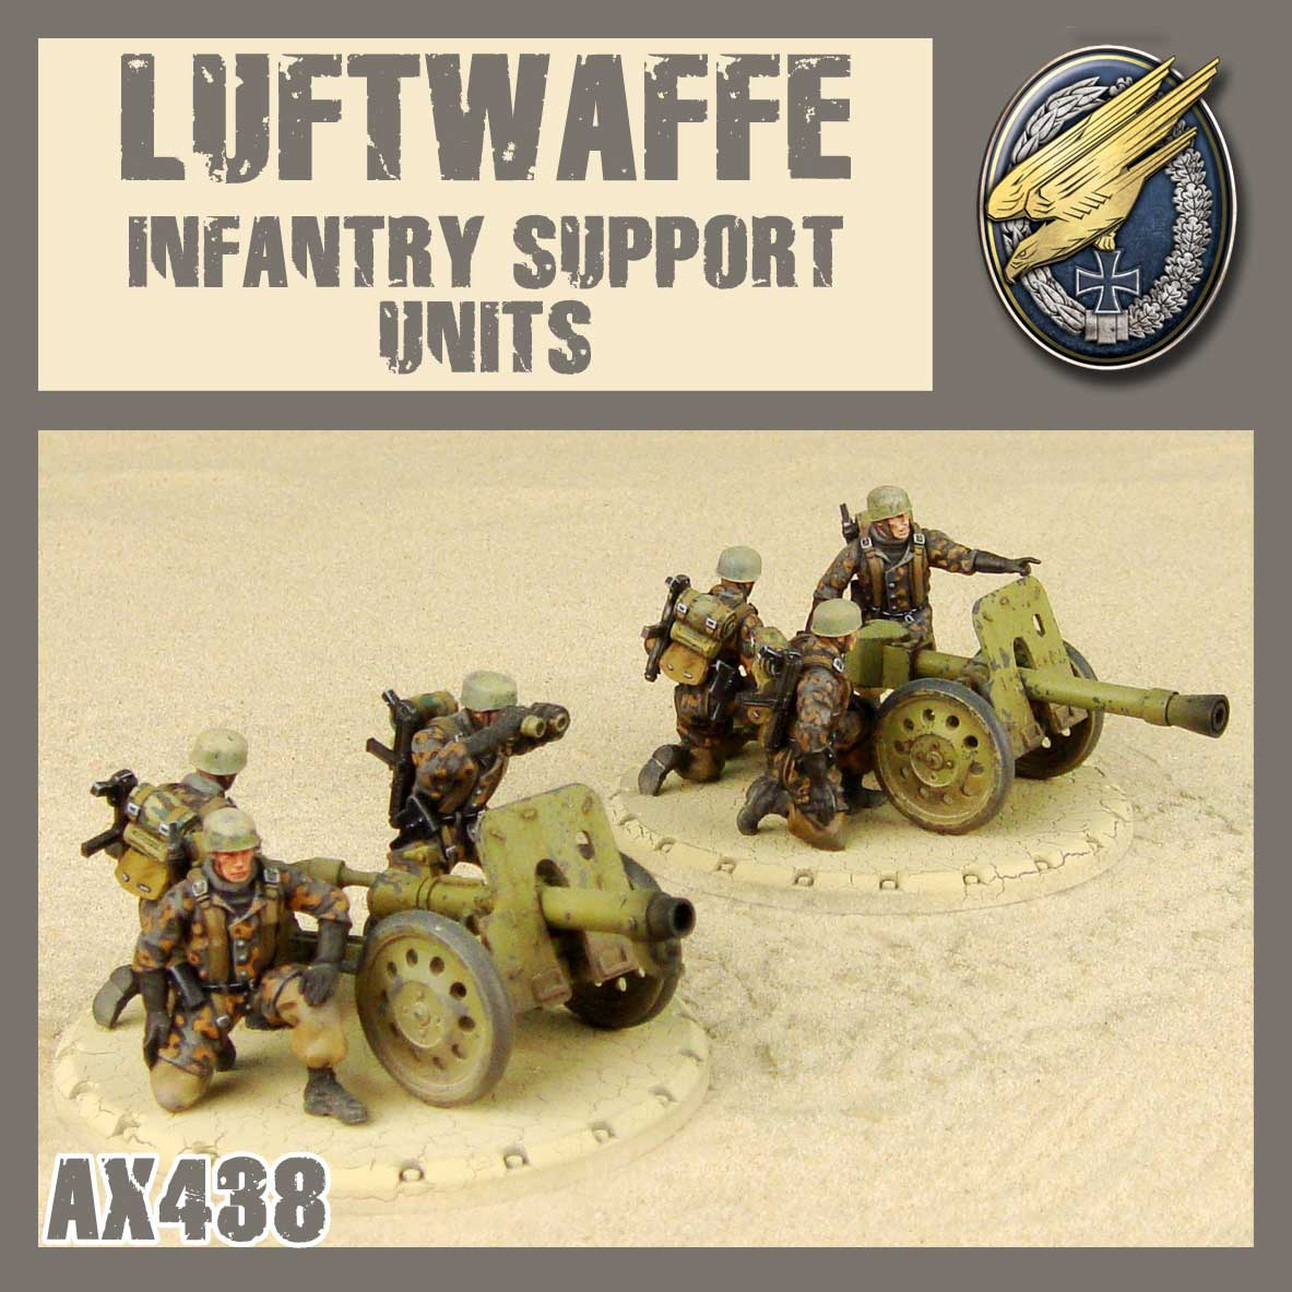 Luftwaffe Infantry Support Units